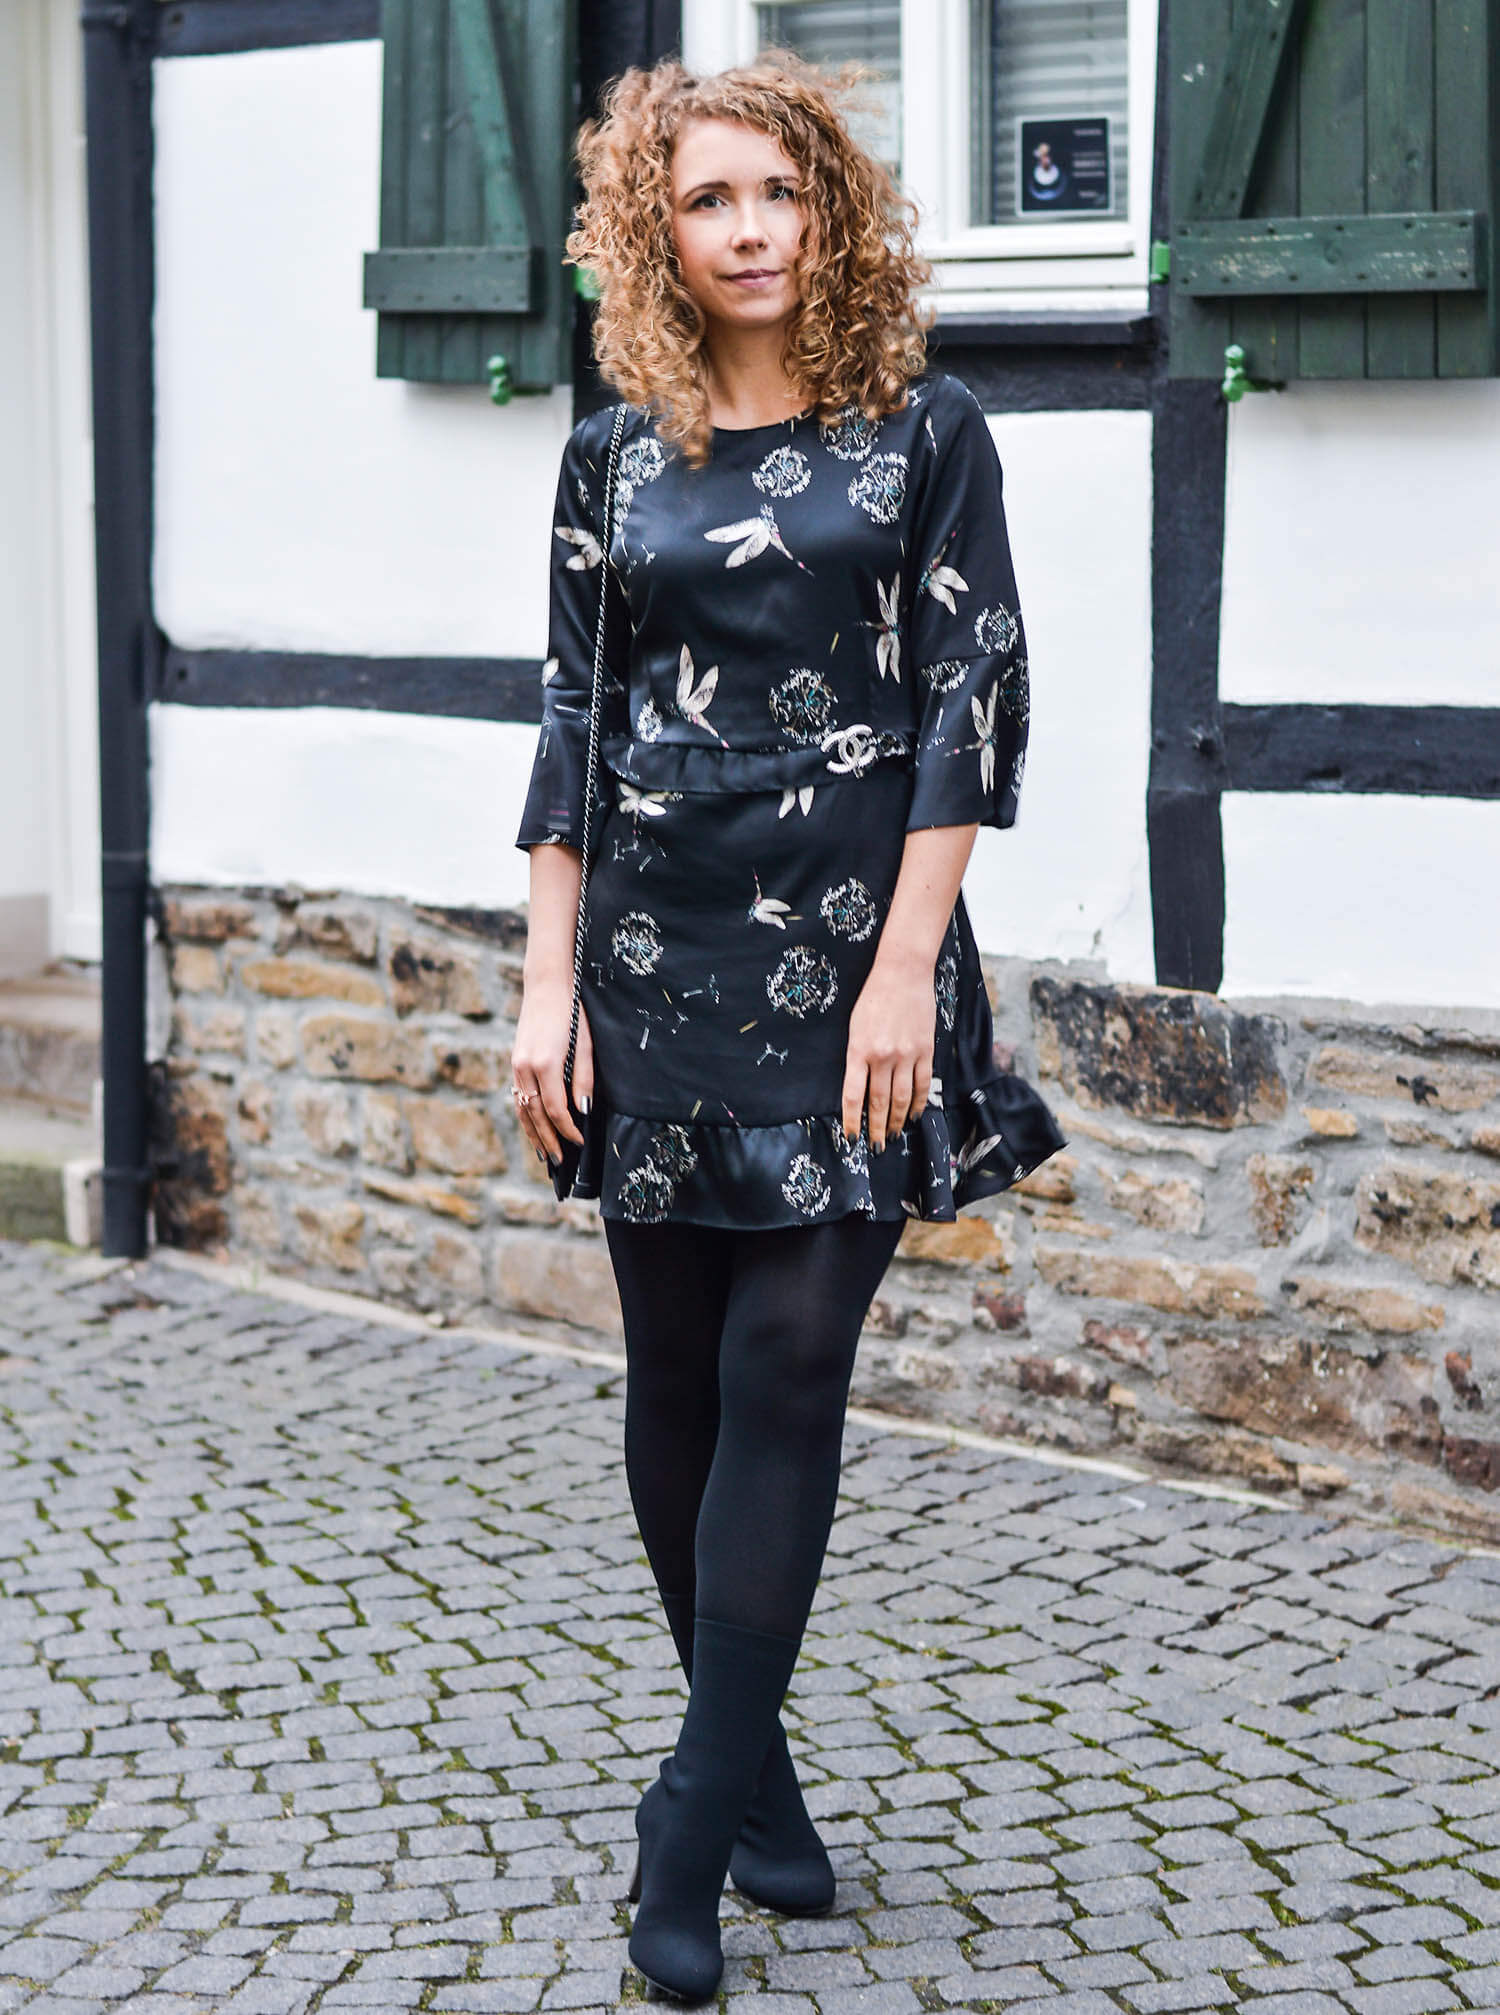 Kationette-fashionblogger-nrw-Outfit-My-New-Year's-Eve-Style-with-new-Zara-Sale-Dress-Sockboots-and-Chanel